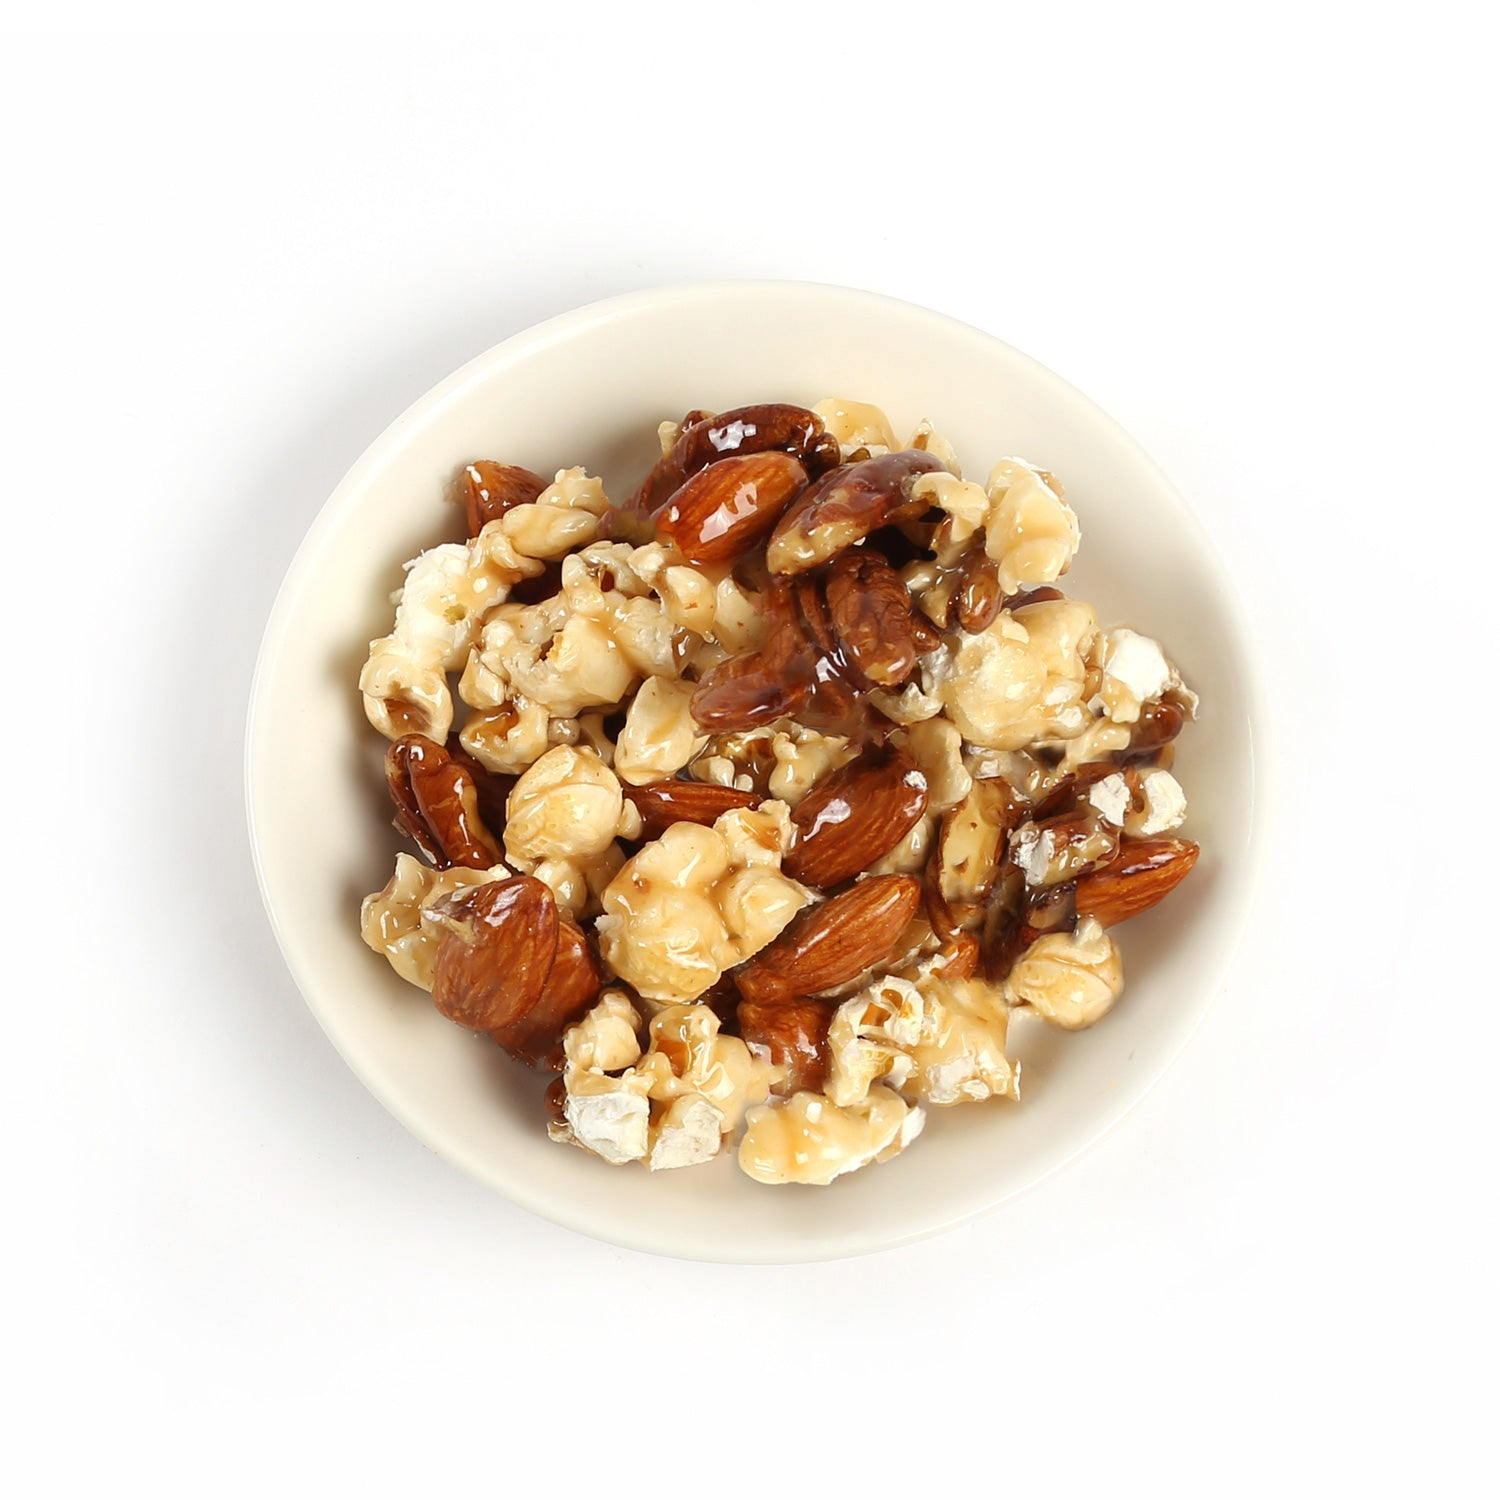 A mix of buttery rich, caramel coated pecans, almonds and fresh popcorn, packaged in a paper bag with a clear window.